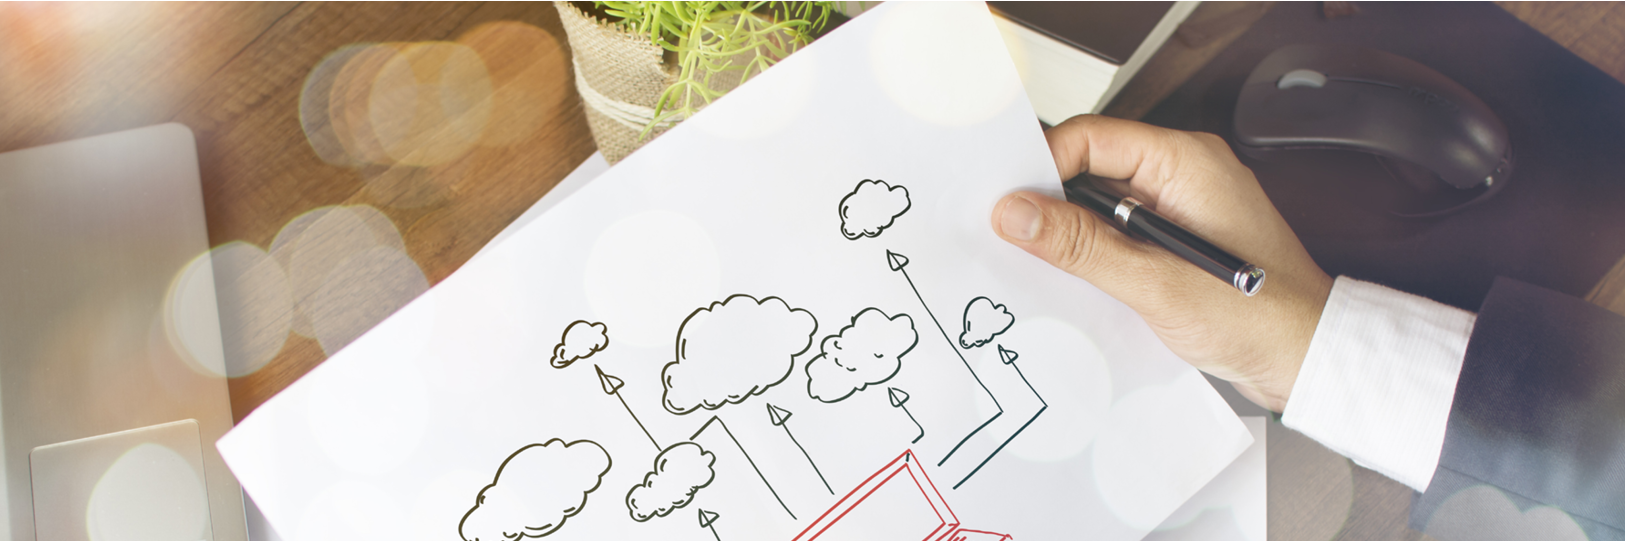 Understanding the new Cloud Security Guidance from the CSA